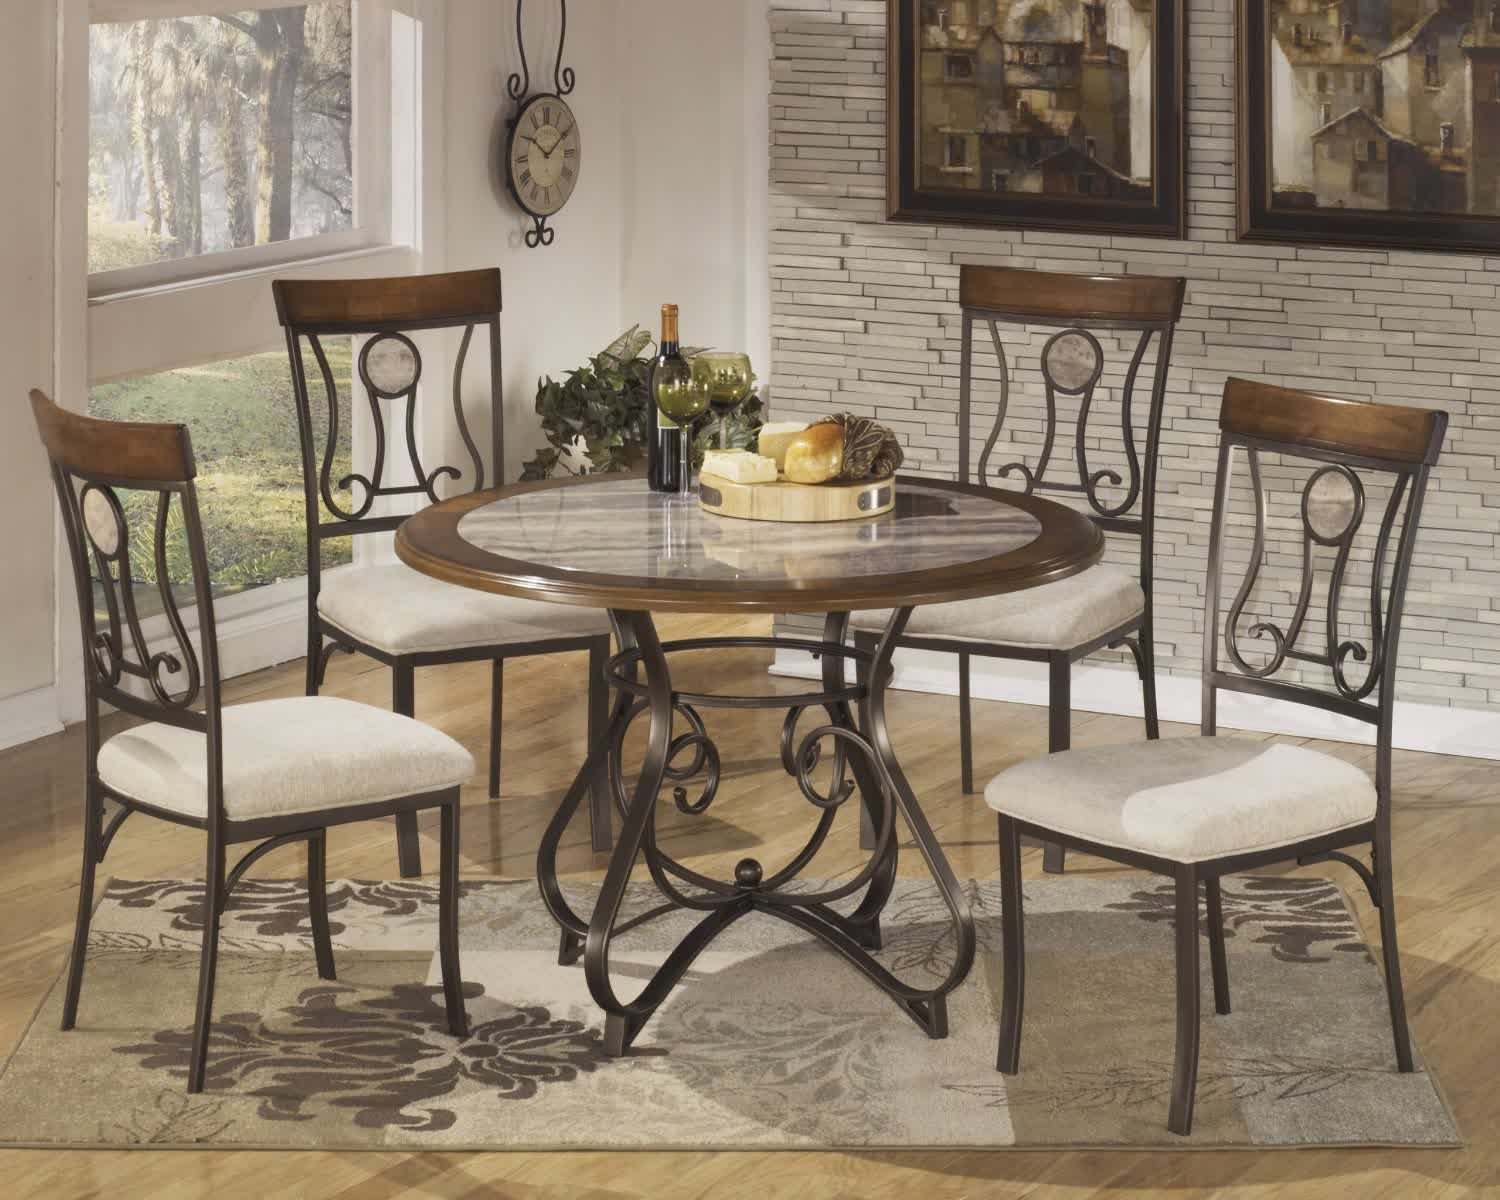 Dining Room Design & Iron Dining Table Decor – An Insane Guide to ...